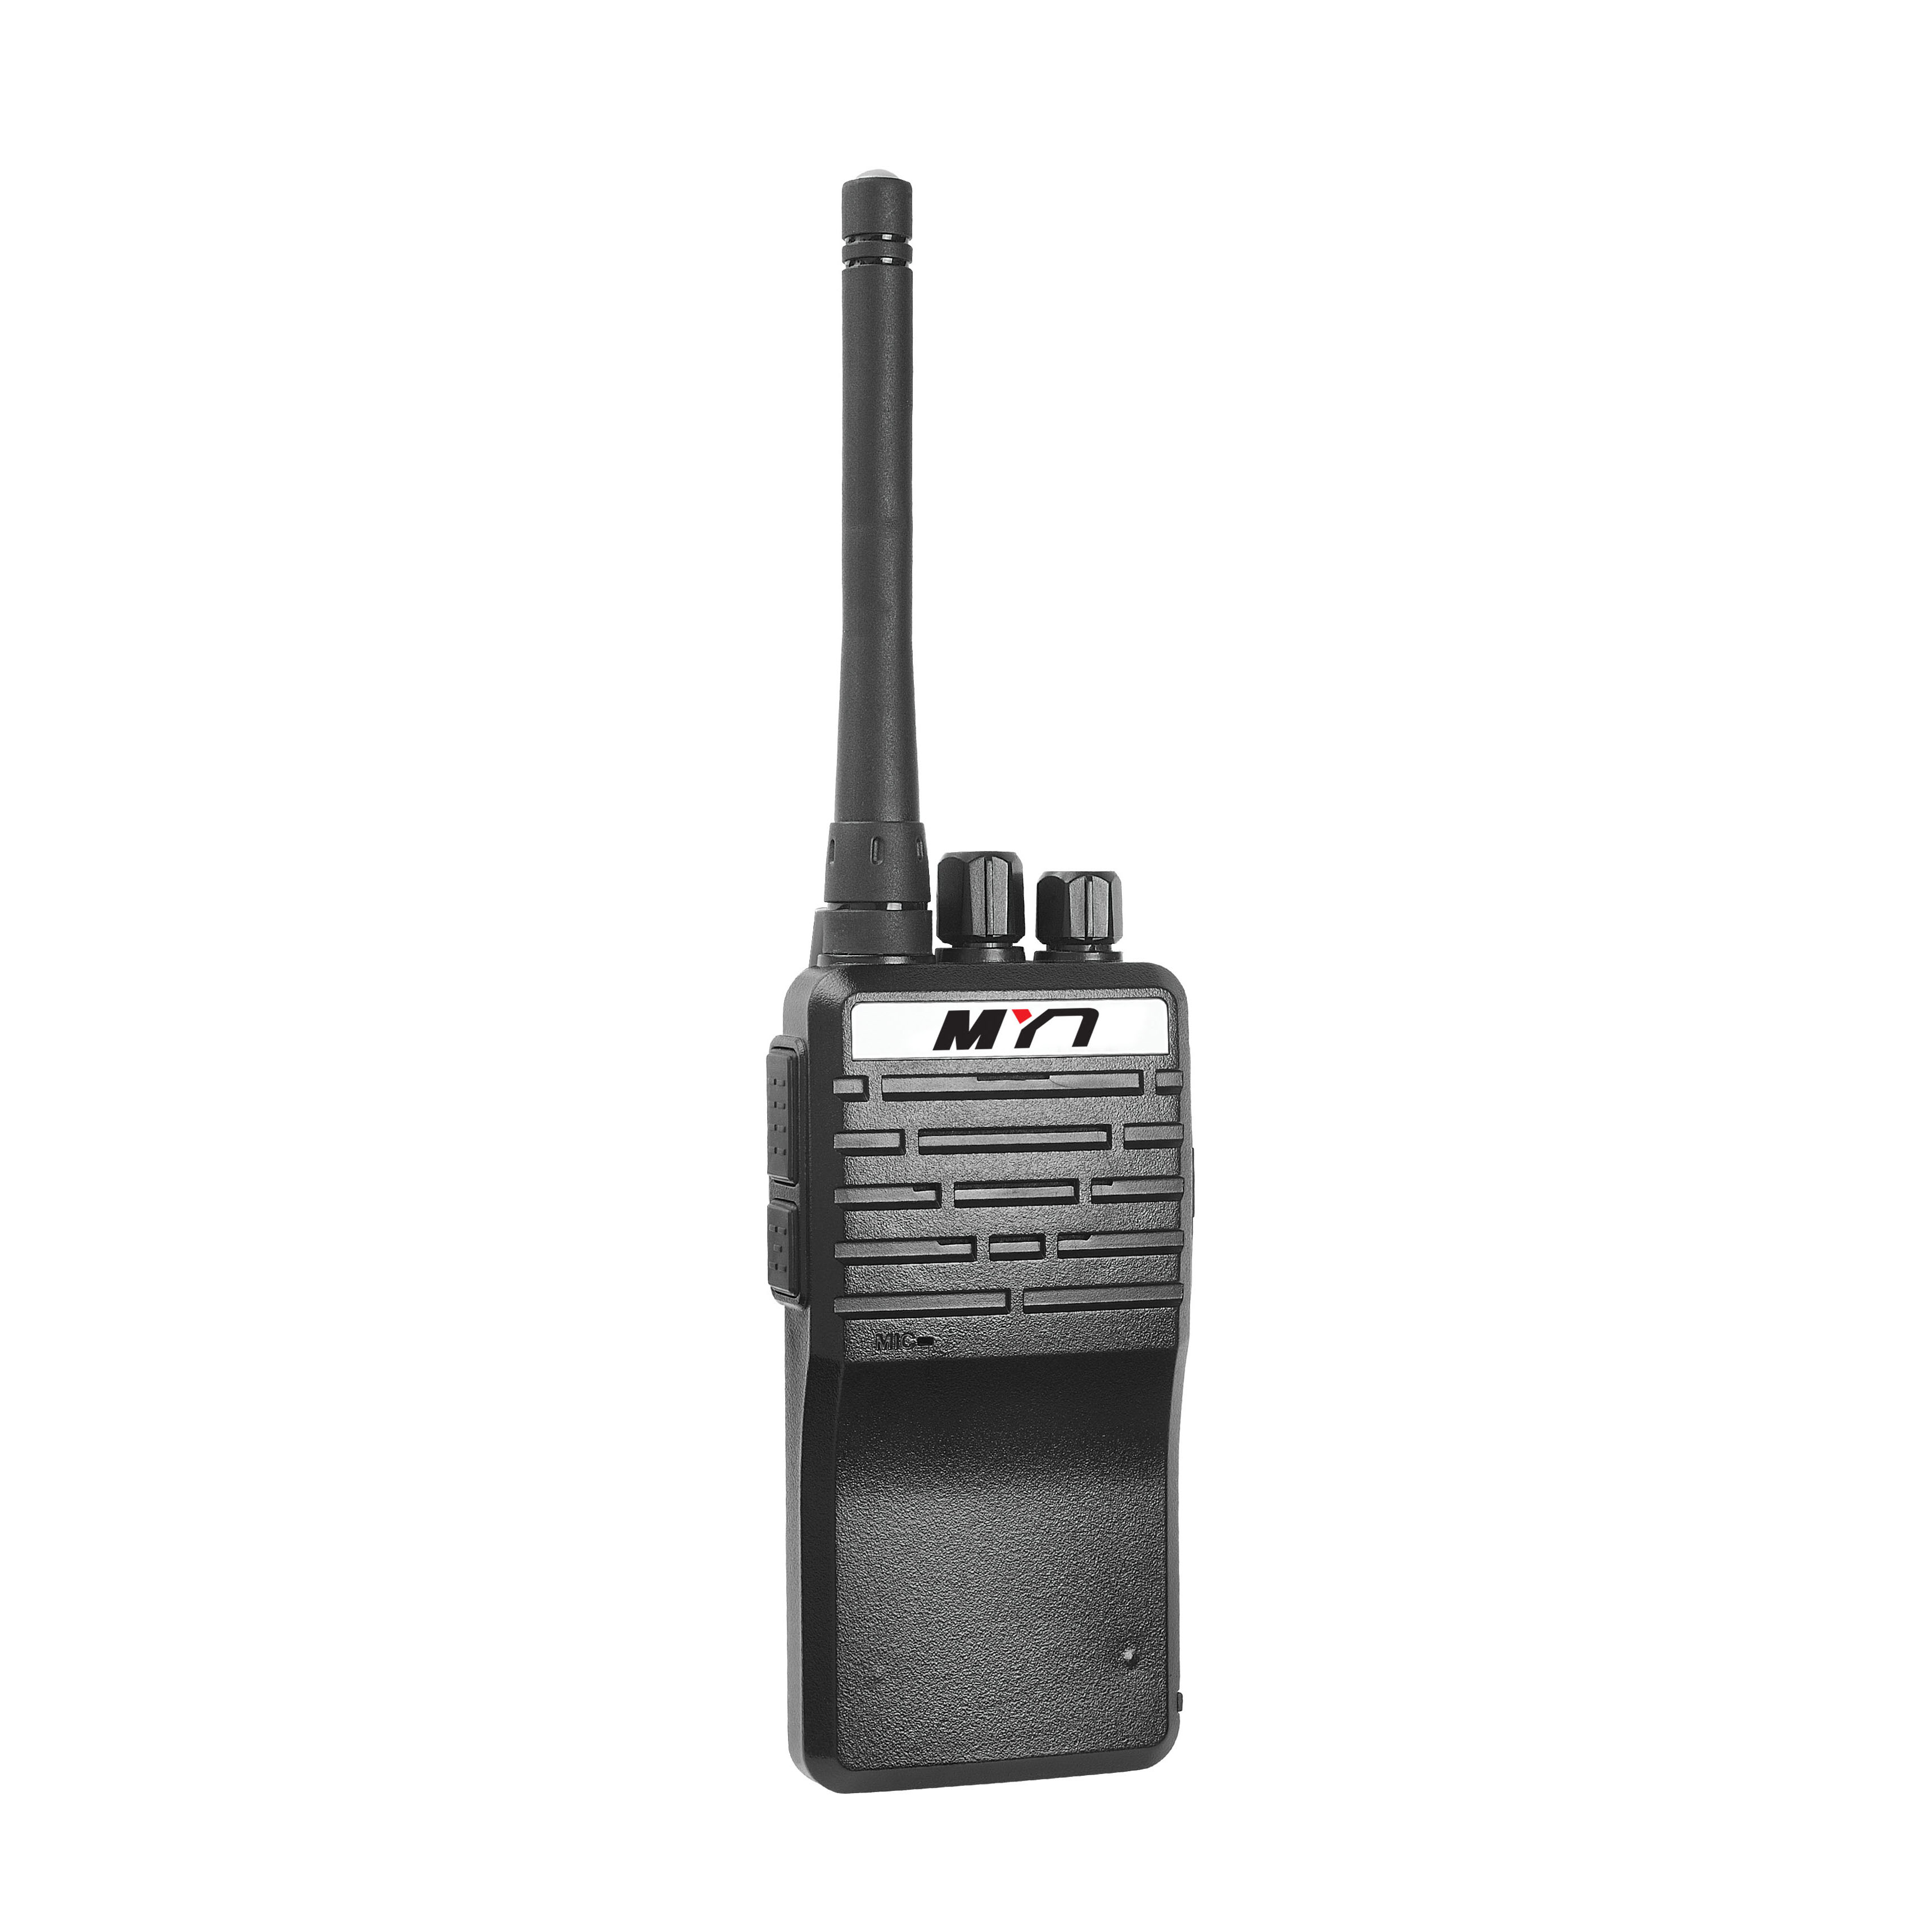 MYT-A6 small smart 2 way radio ptt ani ID code walkie talkie for <strong>communication</strong>